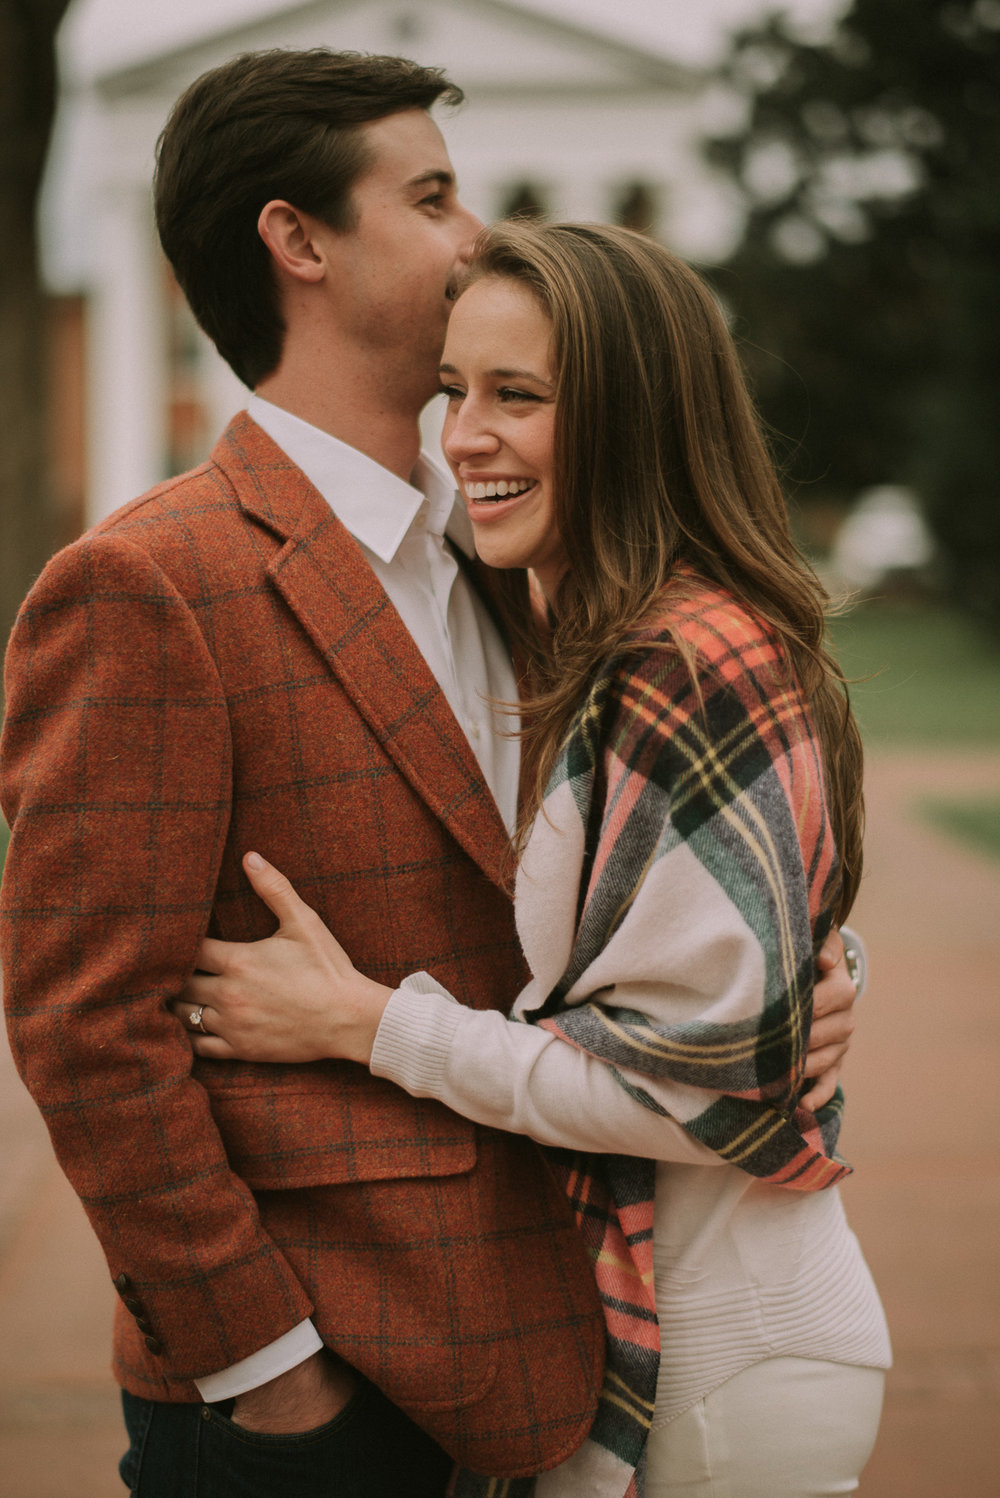 012_Oxford_Mississippi_engagement_photography